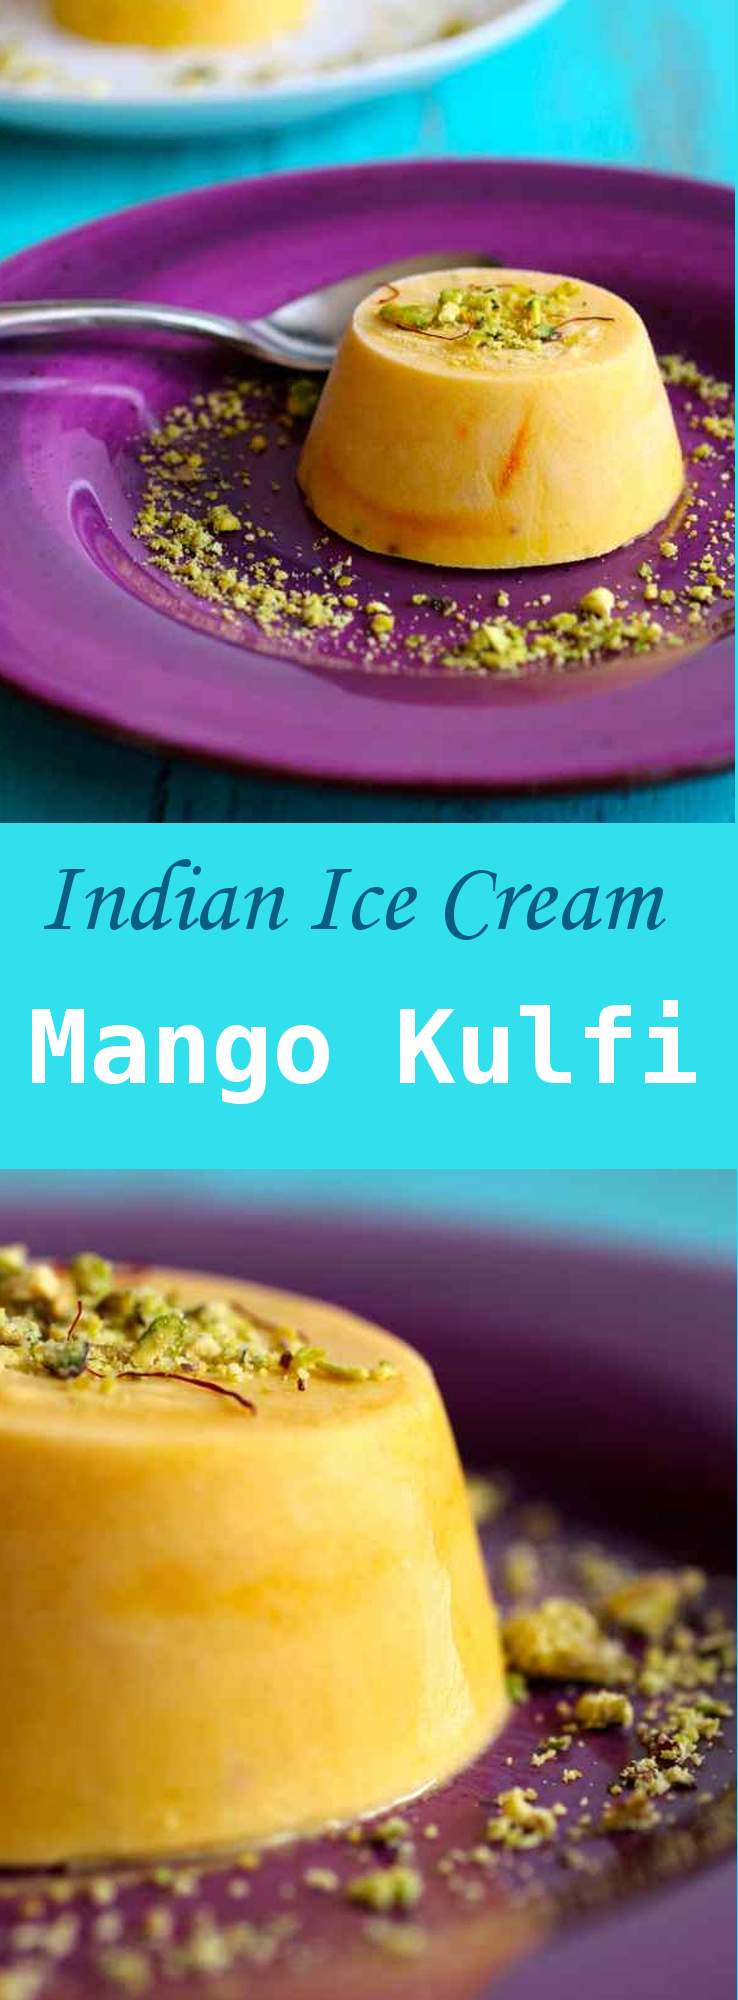 Mango Kulfi Traditional Indian Ice Cream Recipe 196 Flavors